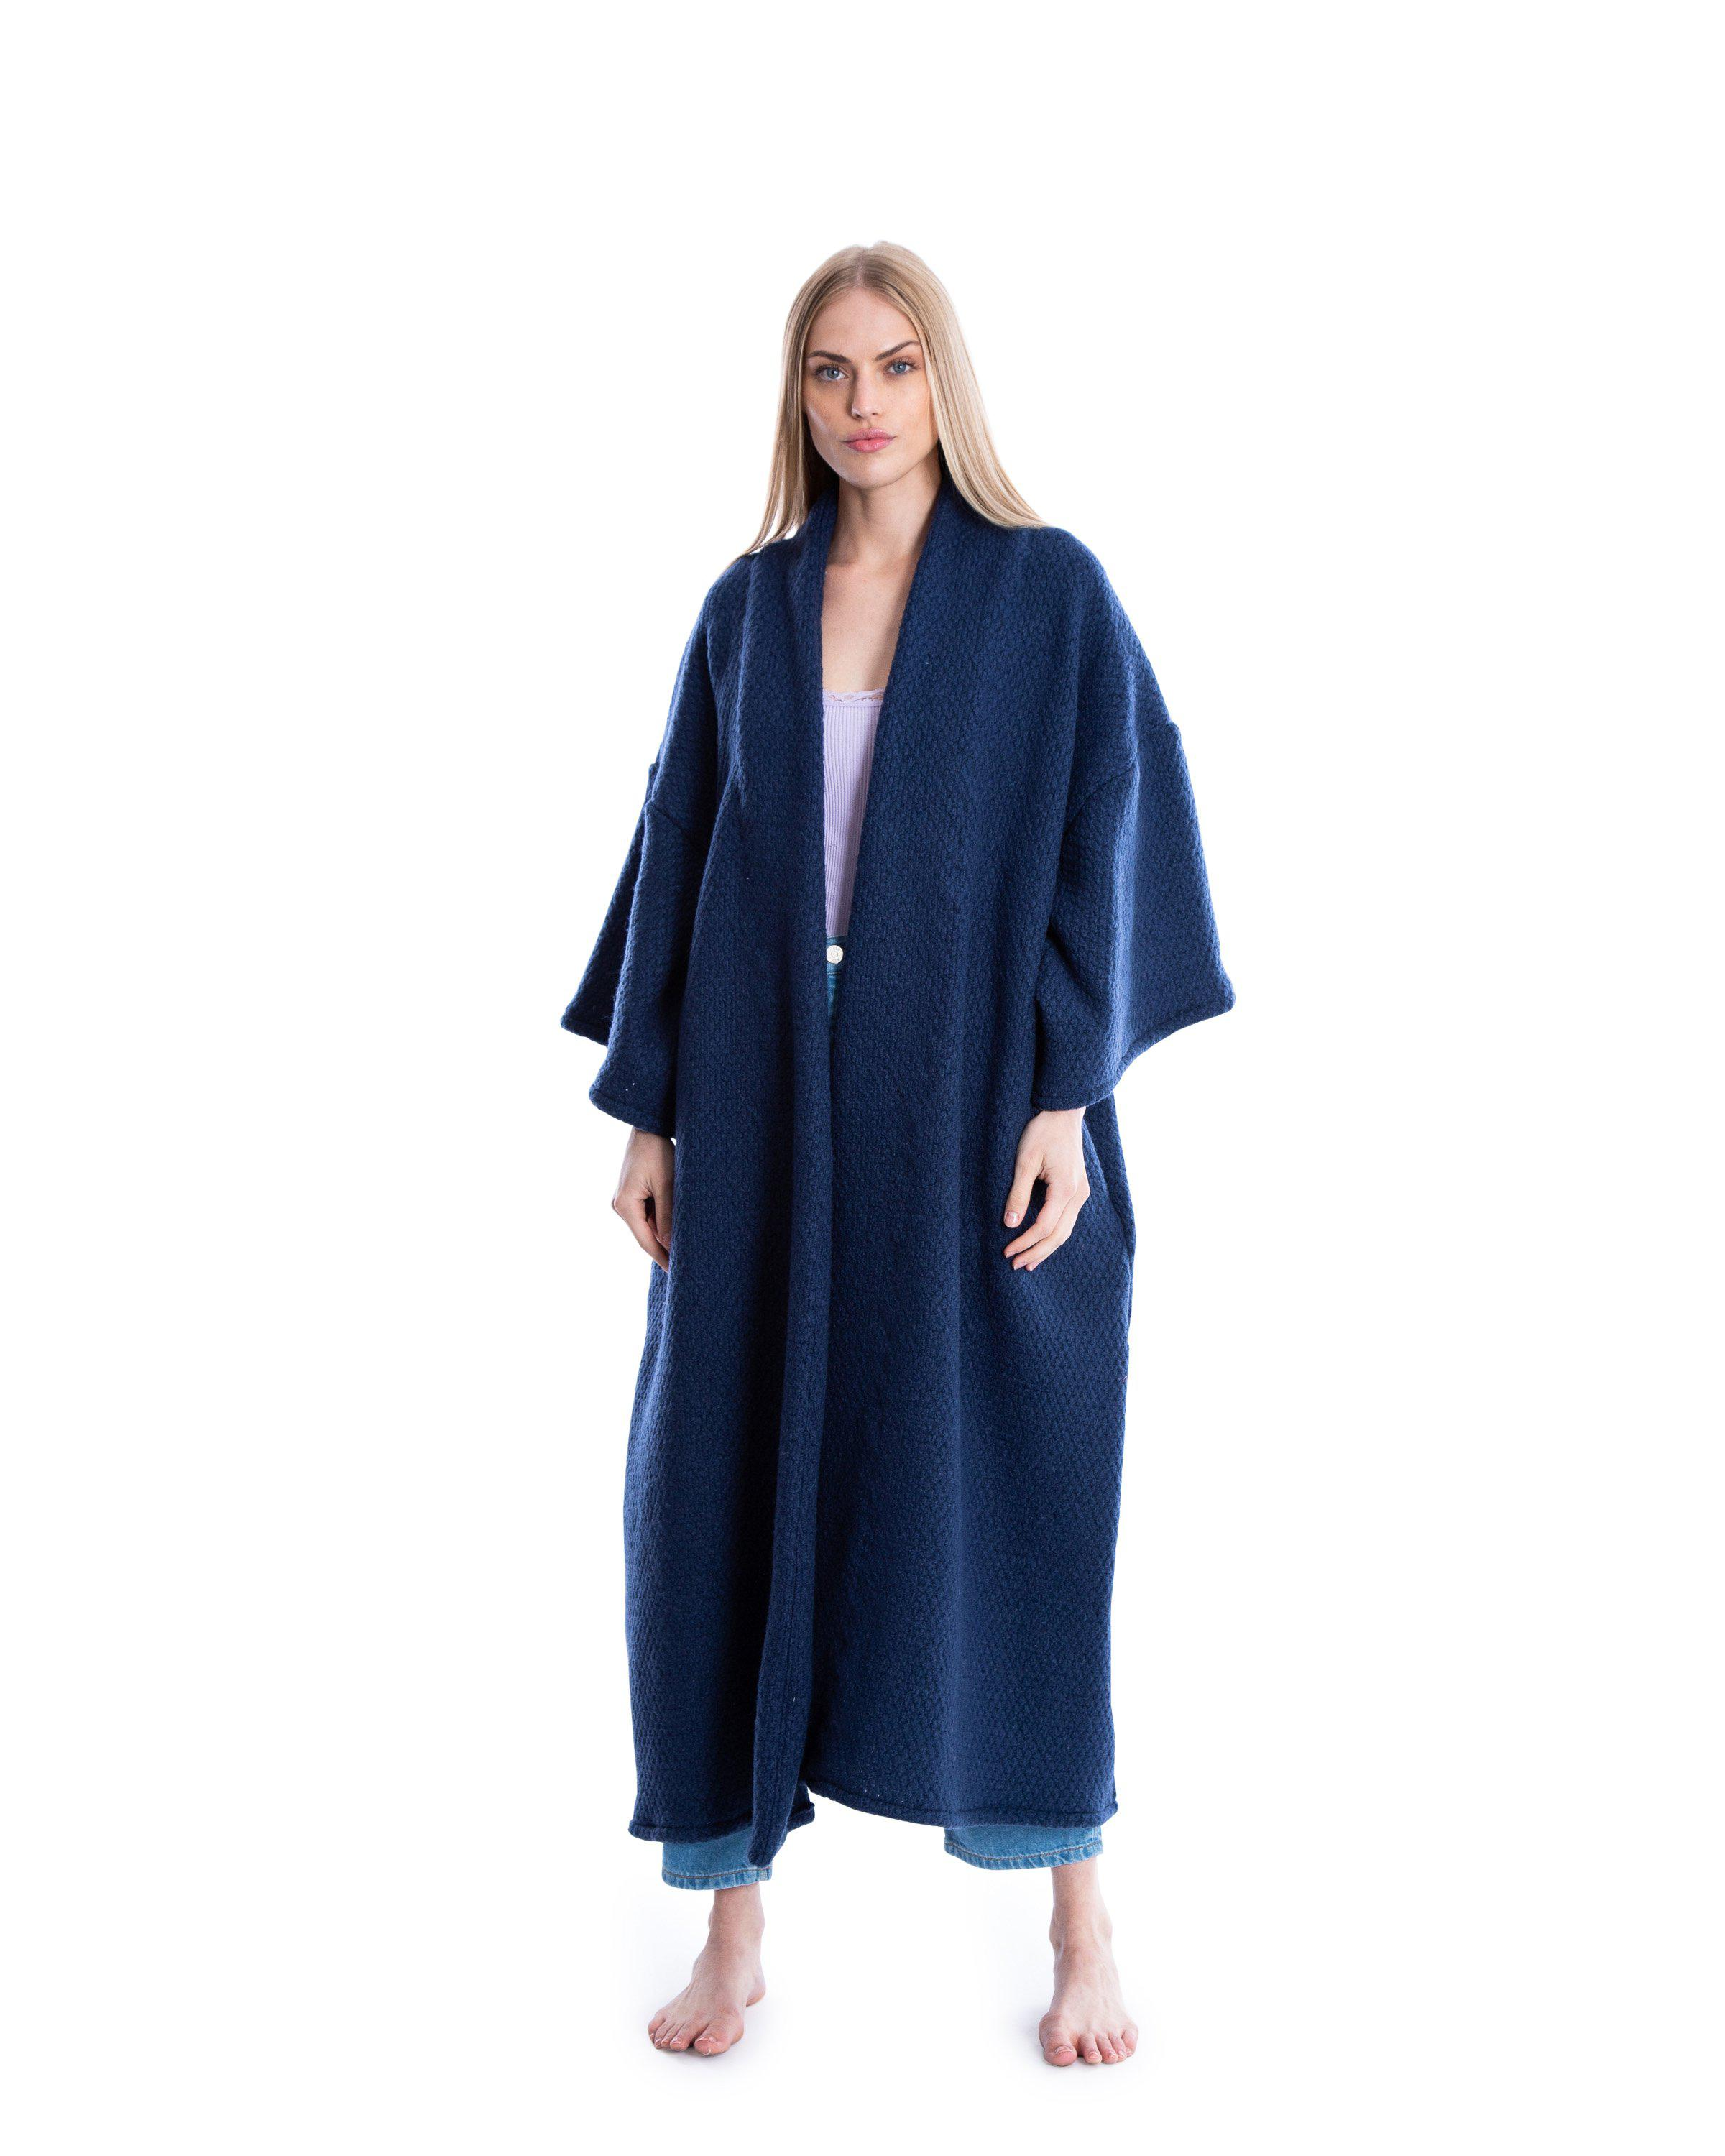 no. 4052 navy knit duster